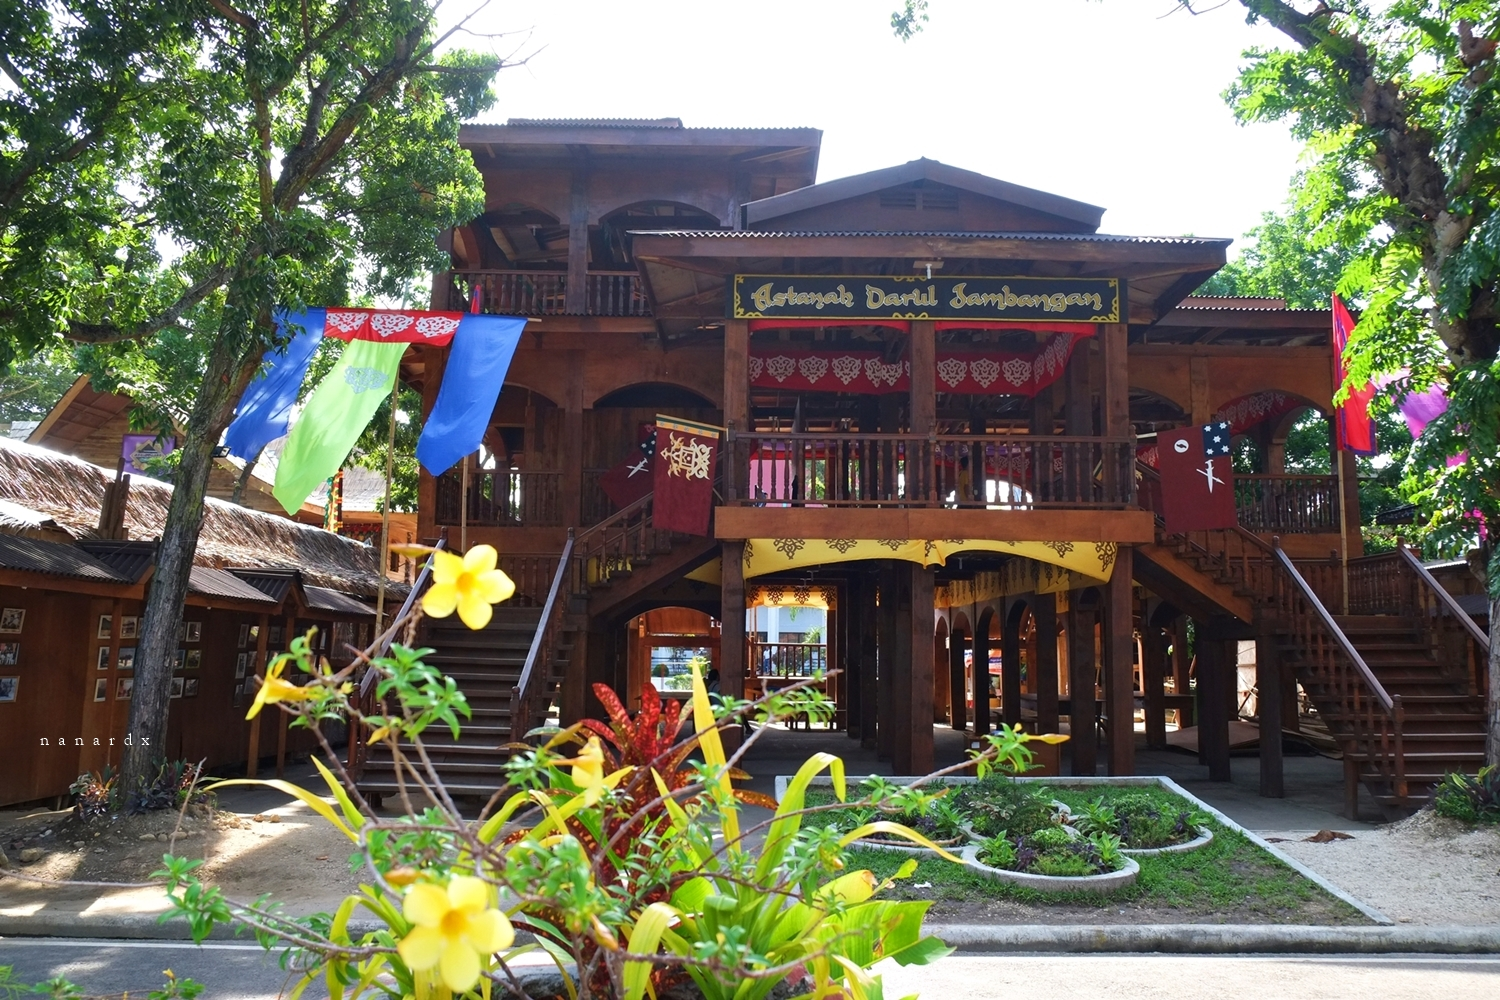 ARMM Cultural Villages celebrates rich culture, history of Muslim Mindanao